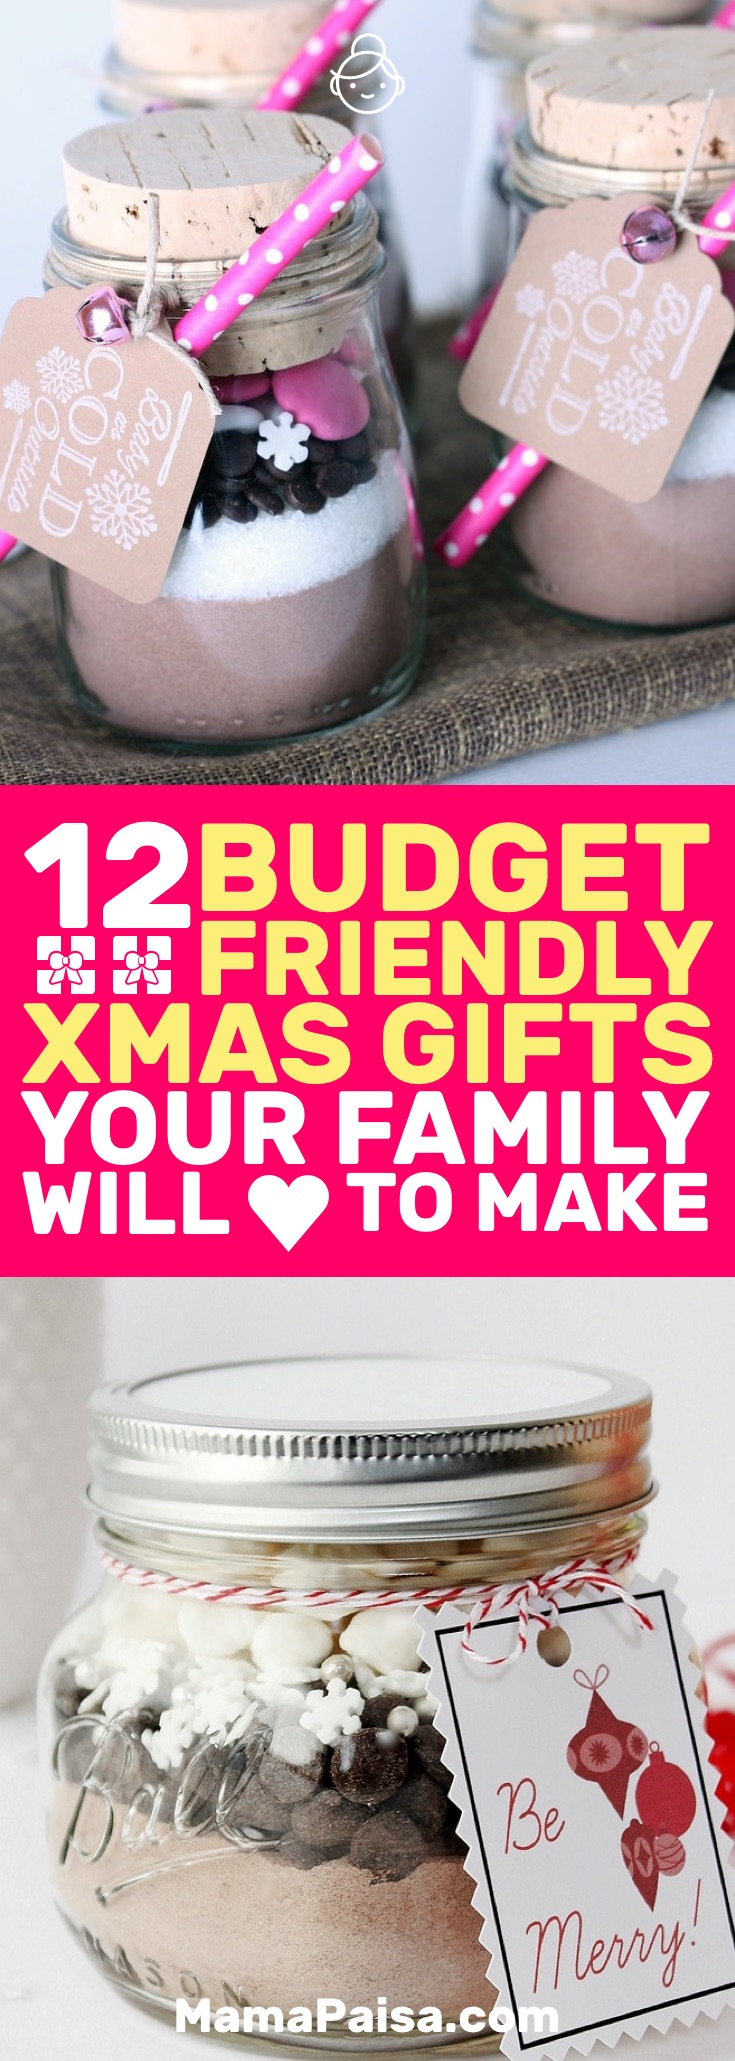 12 Budget-Friendly DIY Christmas Gifts that Your Family Will Enjoy Making